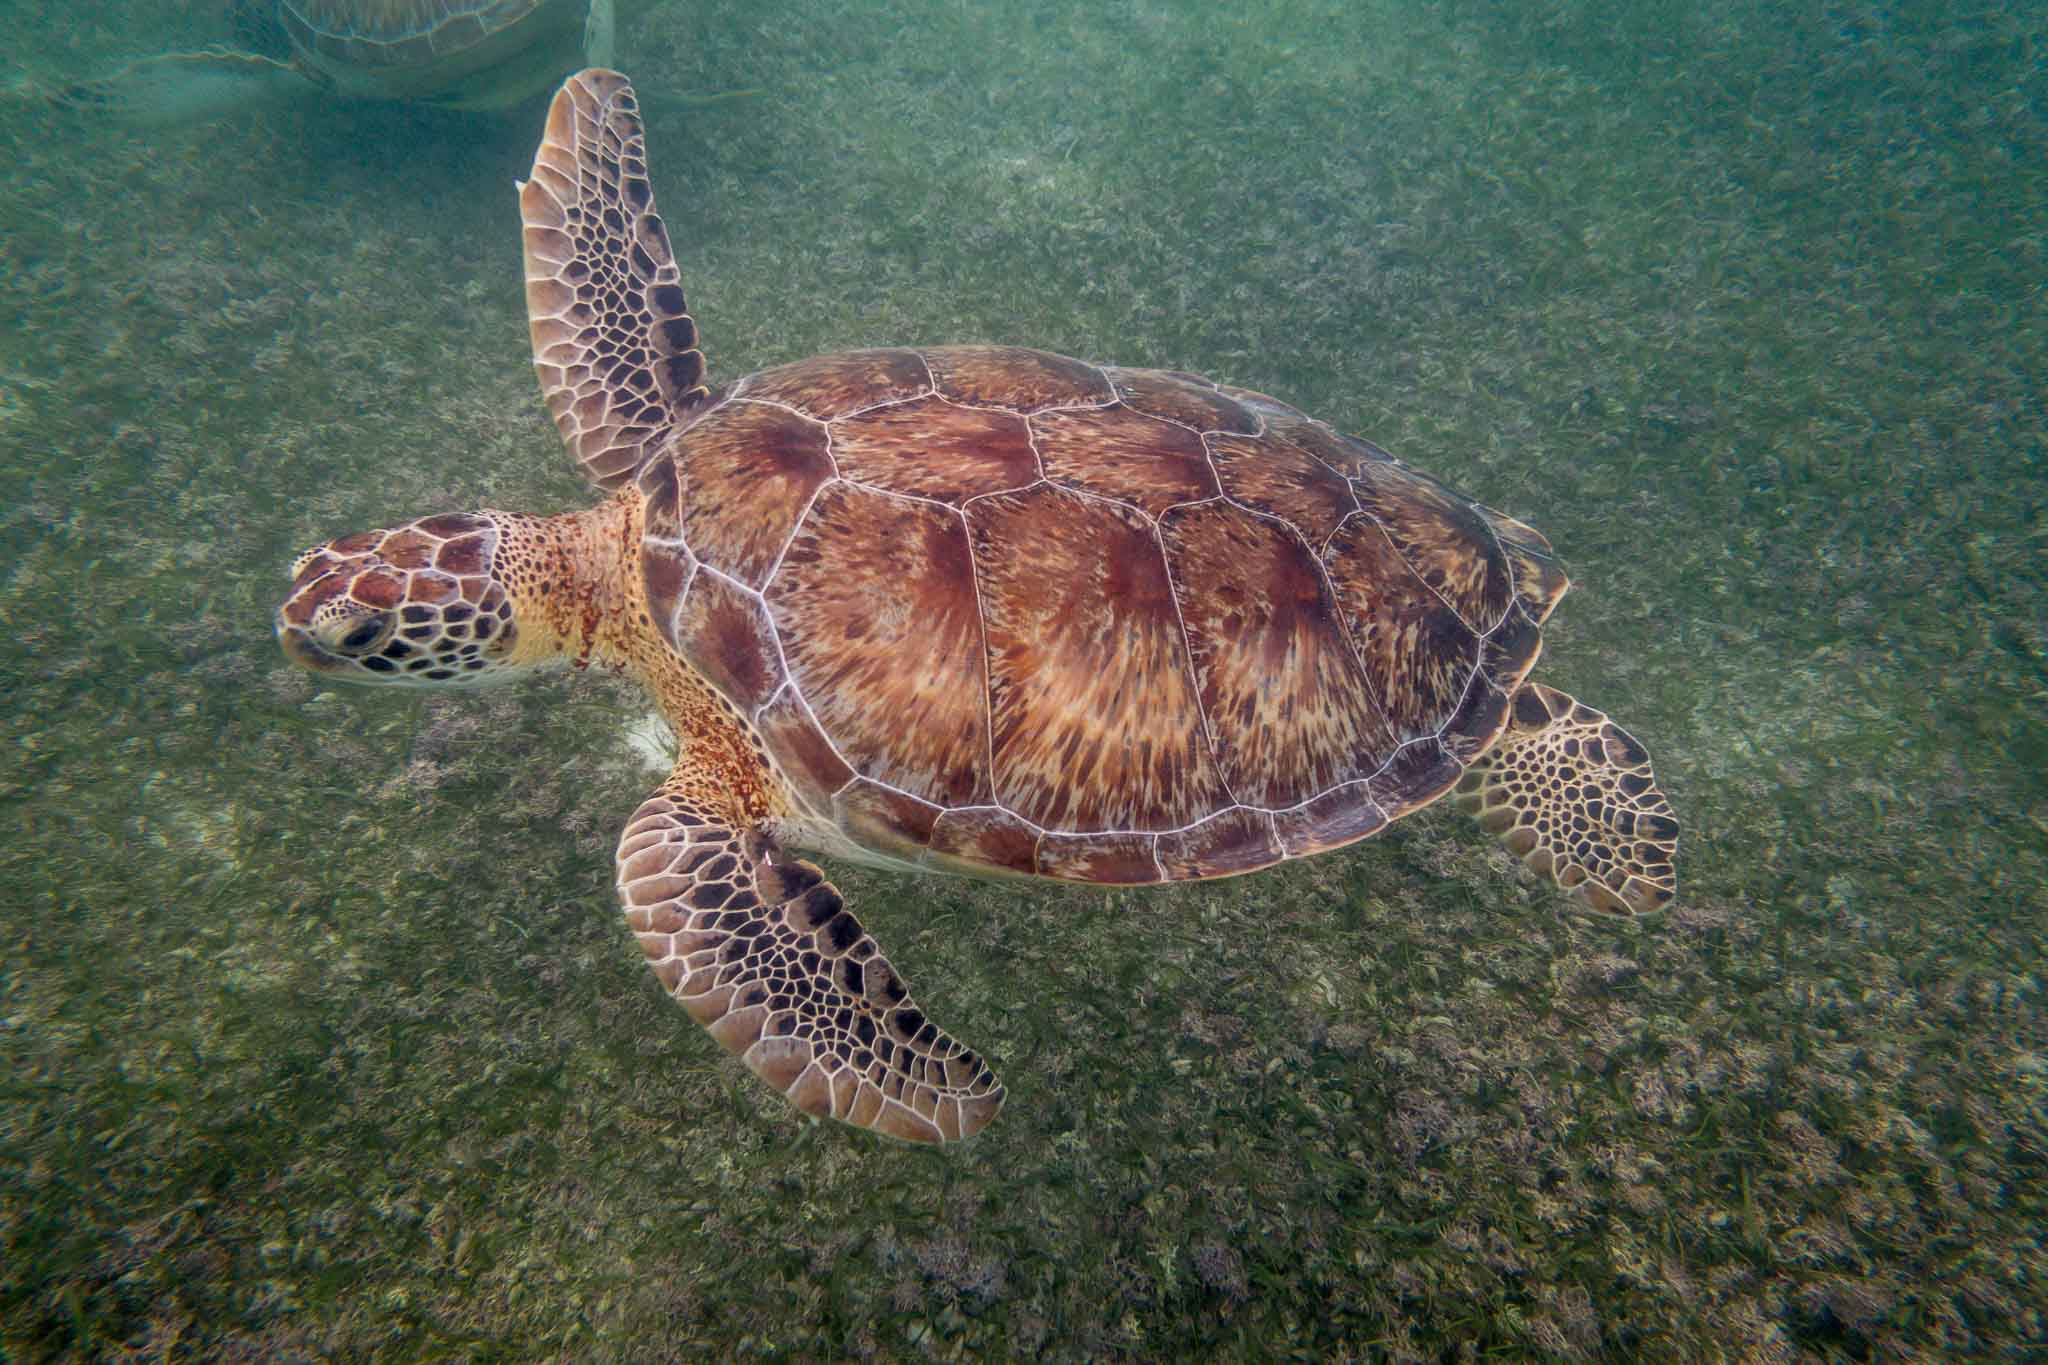 Akumal snorkeling is a great way to observe sea turtles